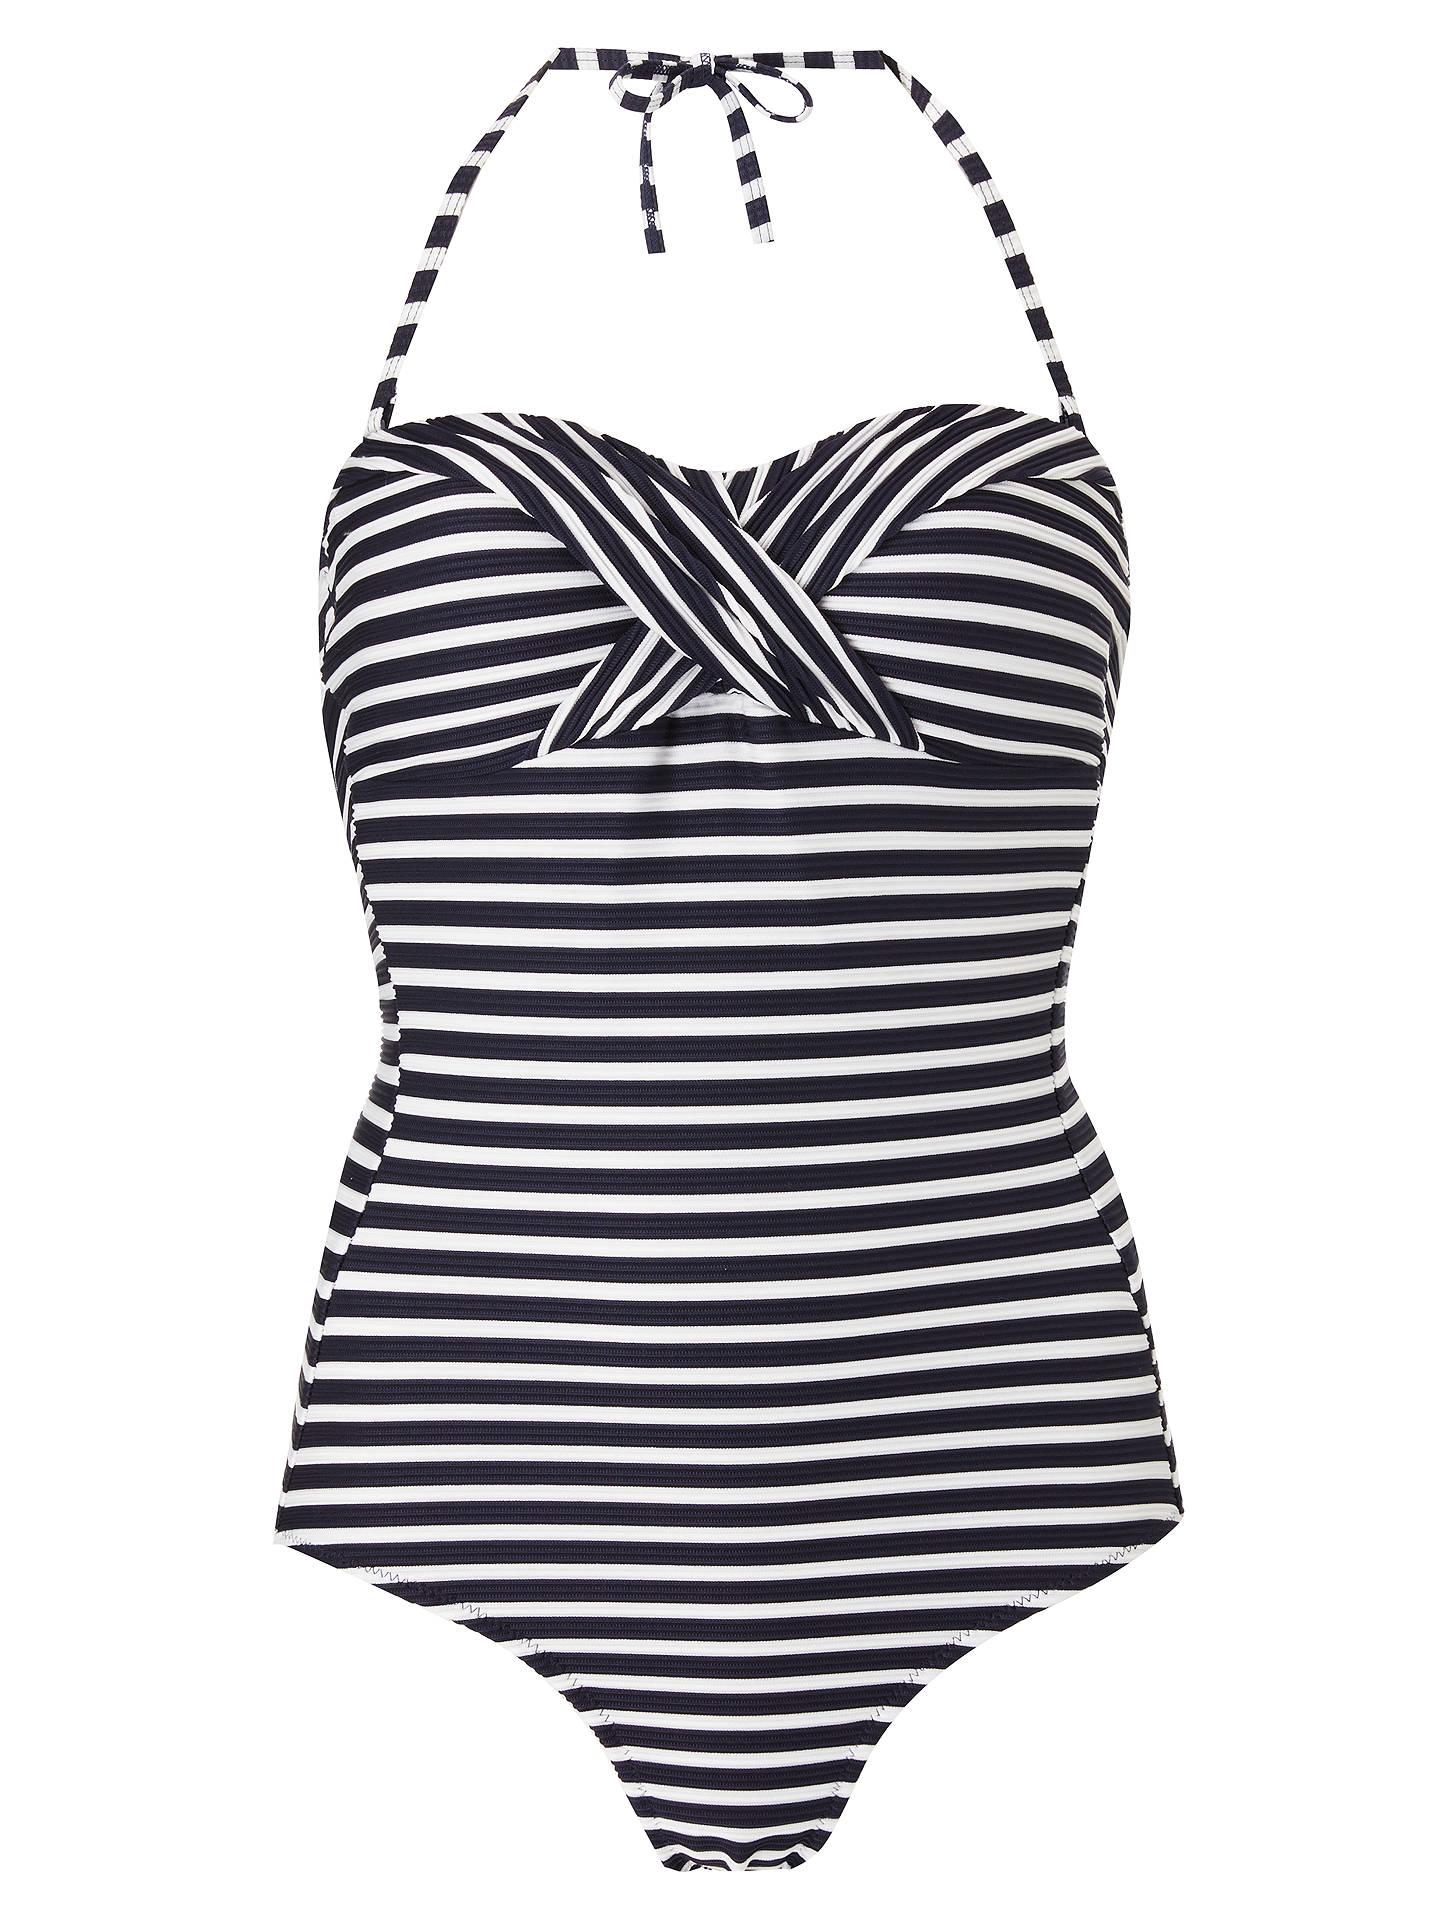 21d430b876 ... BuyJohn Lewis   Partners Textured Stripe Control Swimsuit